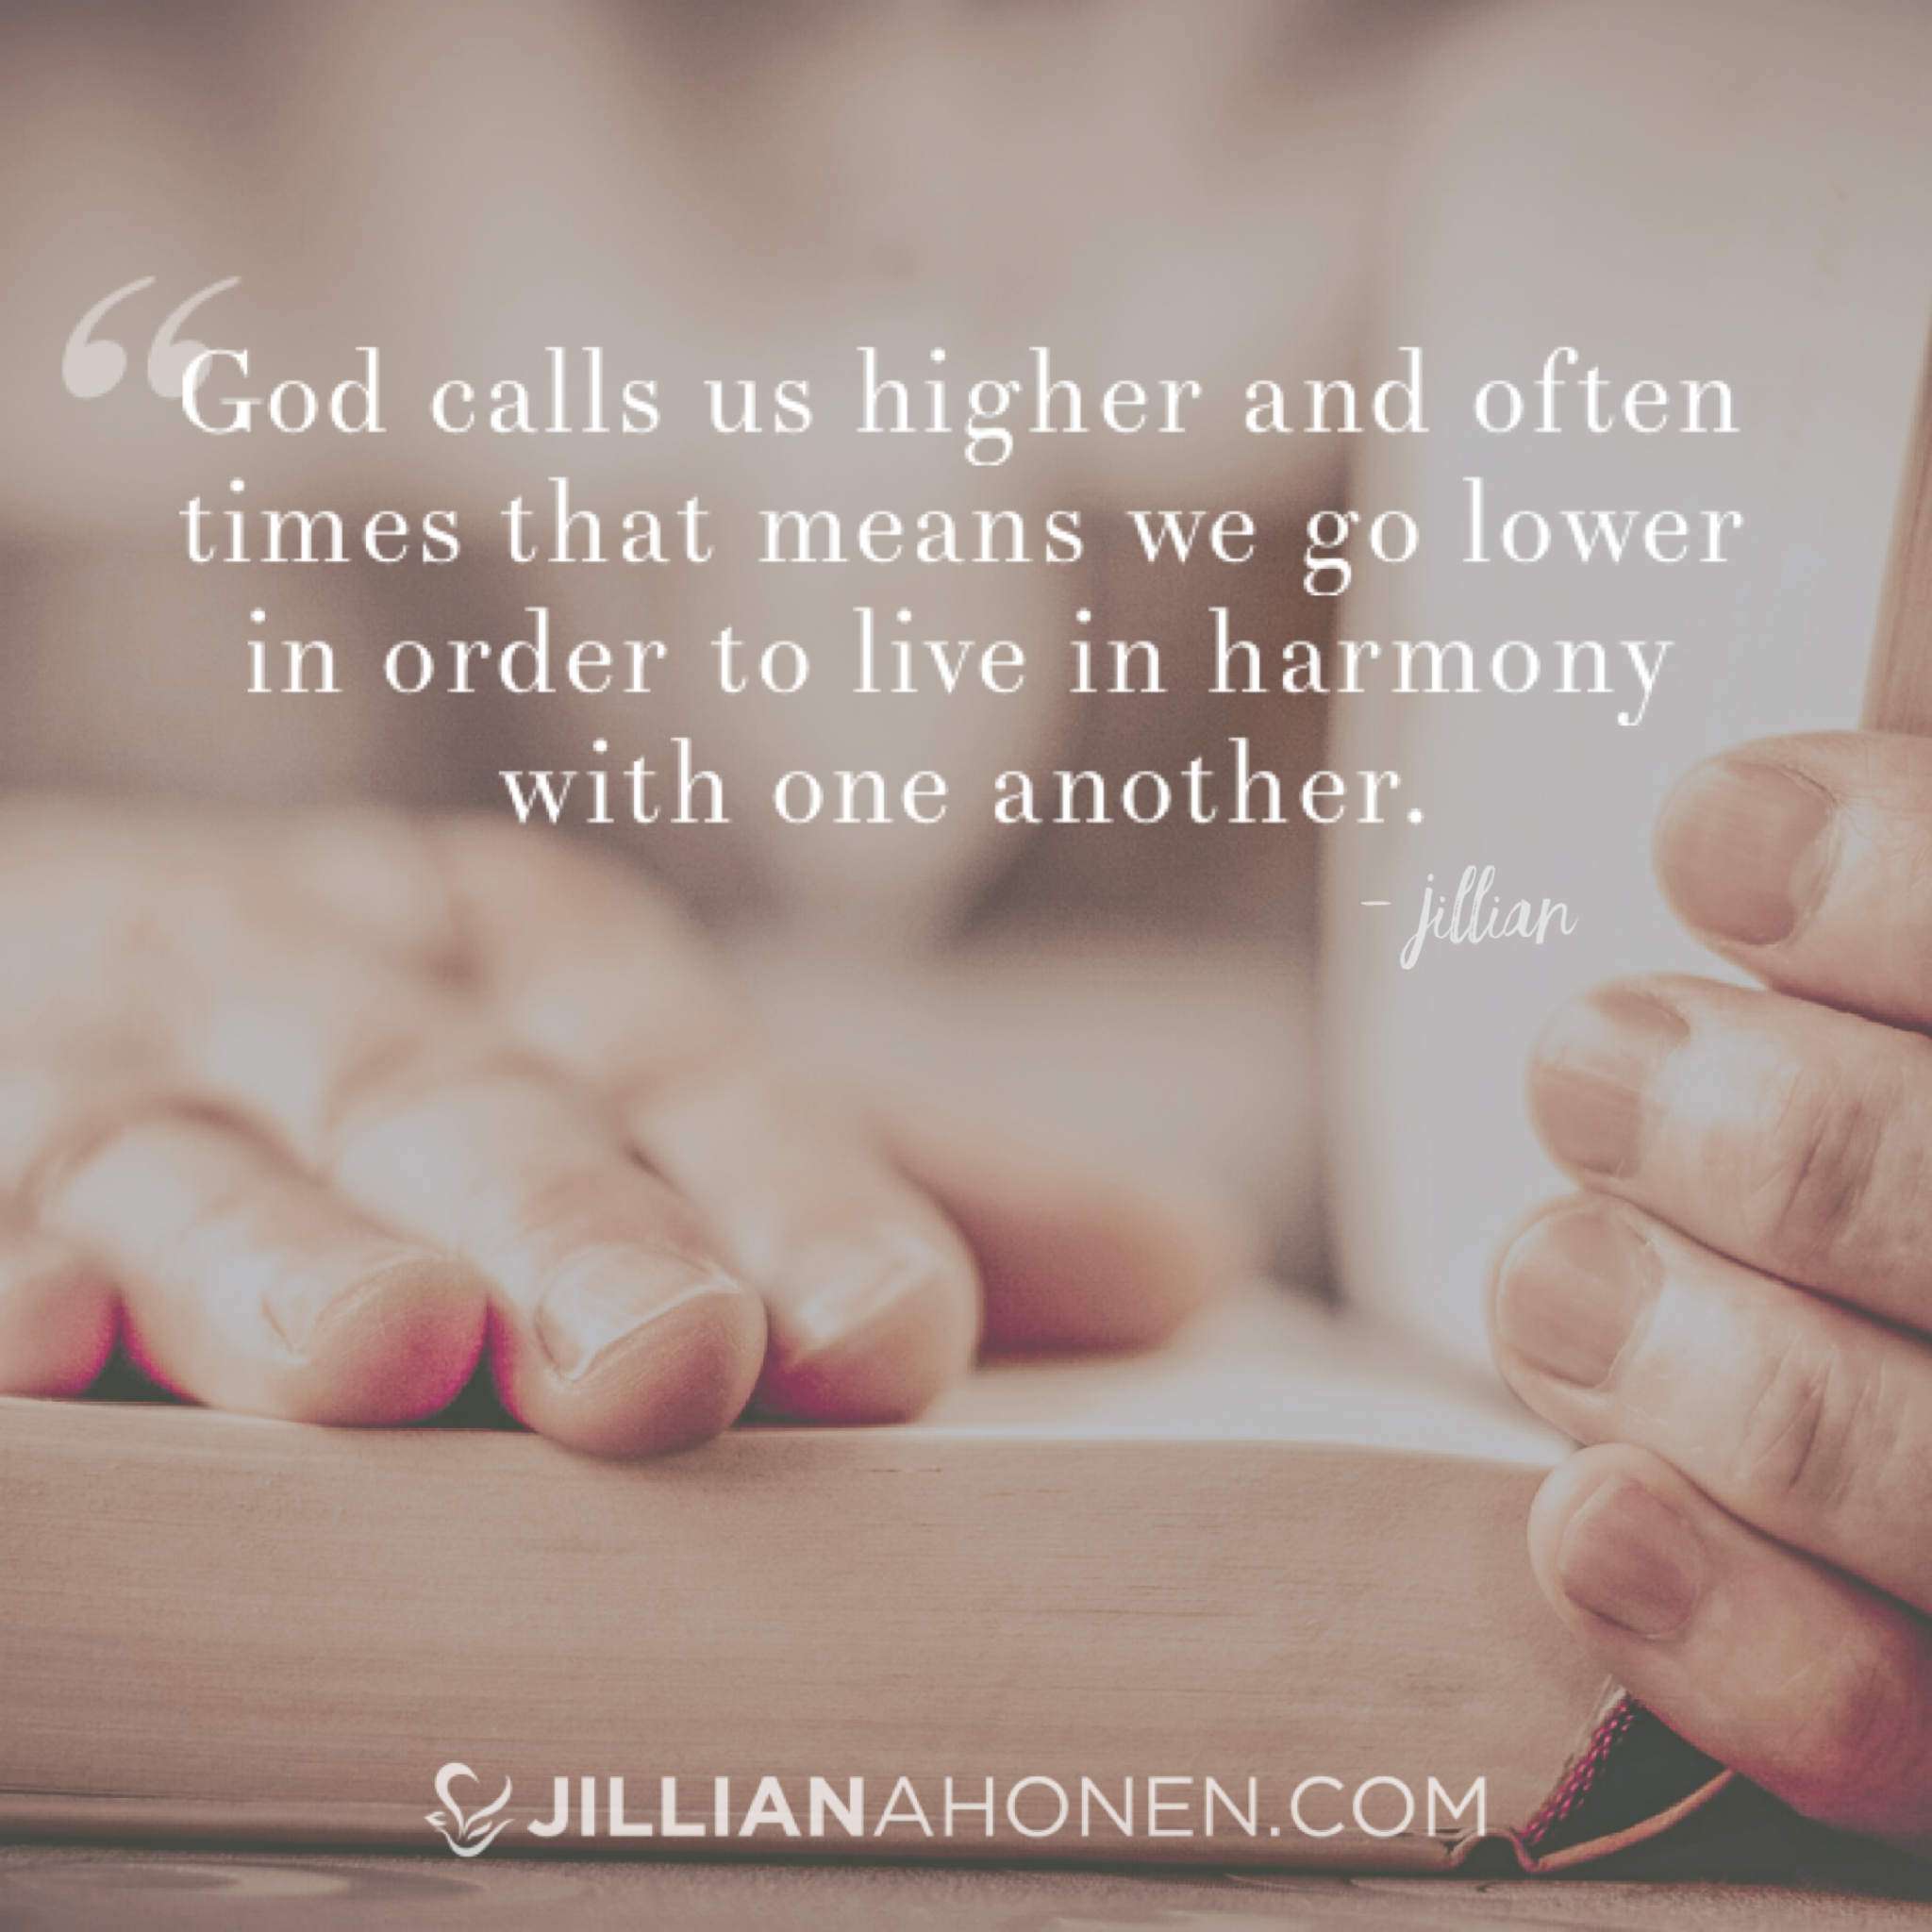 How to Live in Harmony